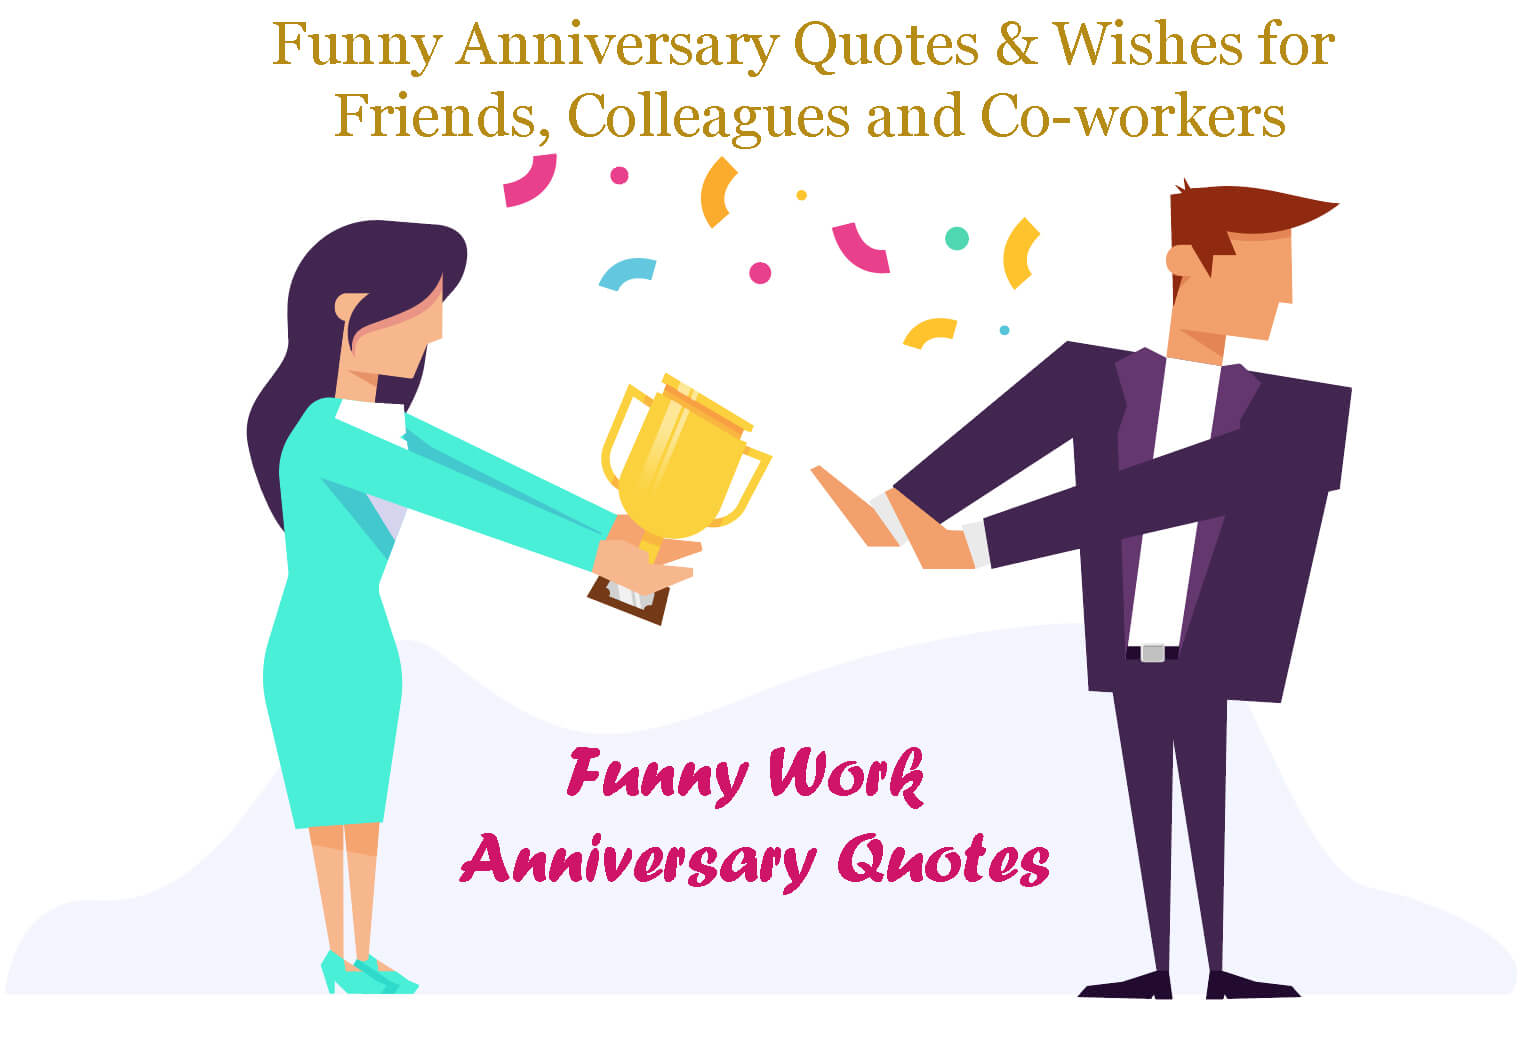 Funny Work Anniversary Quotes - To Put smile on their faces